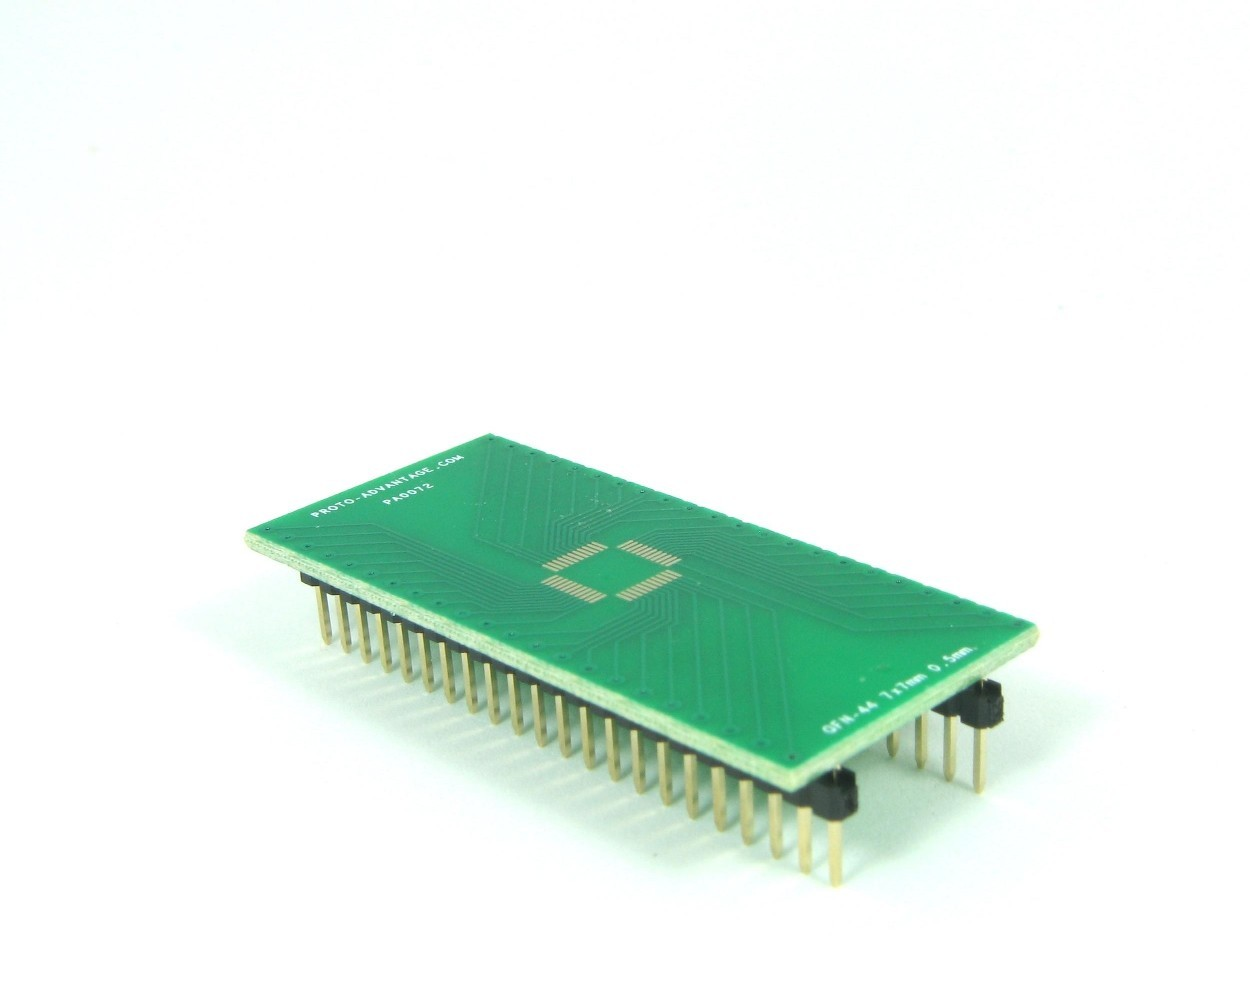 QFN-44 to DIP-44 SMT Adapter (0.5 mm pitch, 7 x 7 mm body)